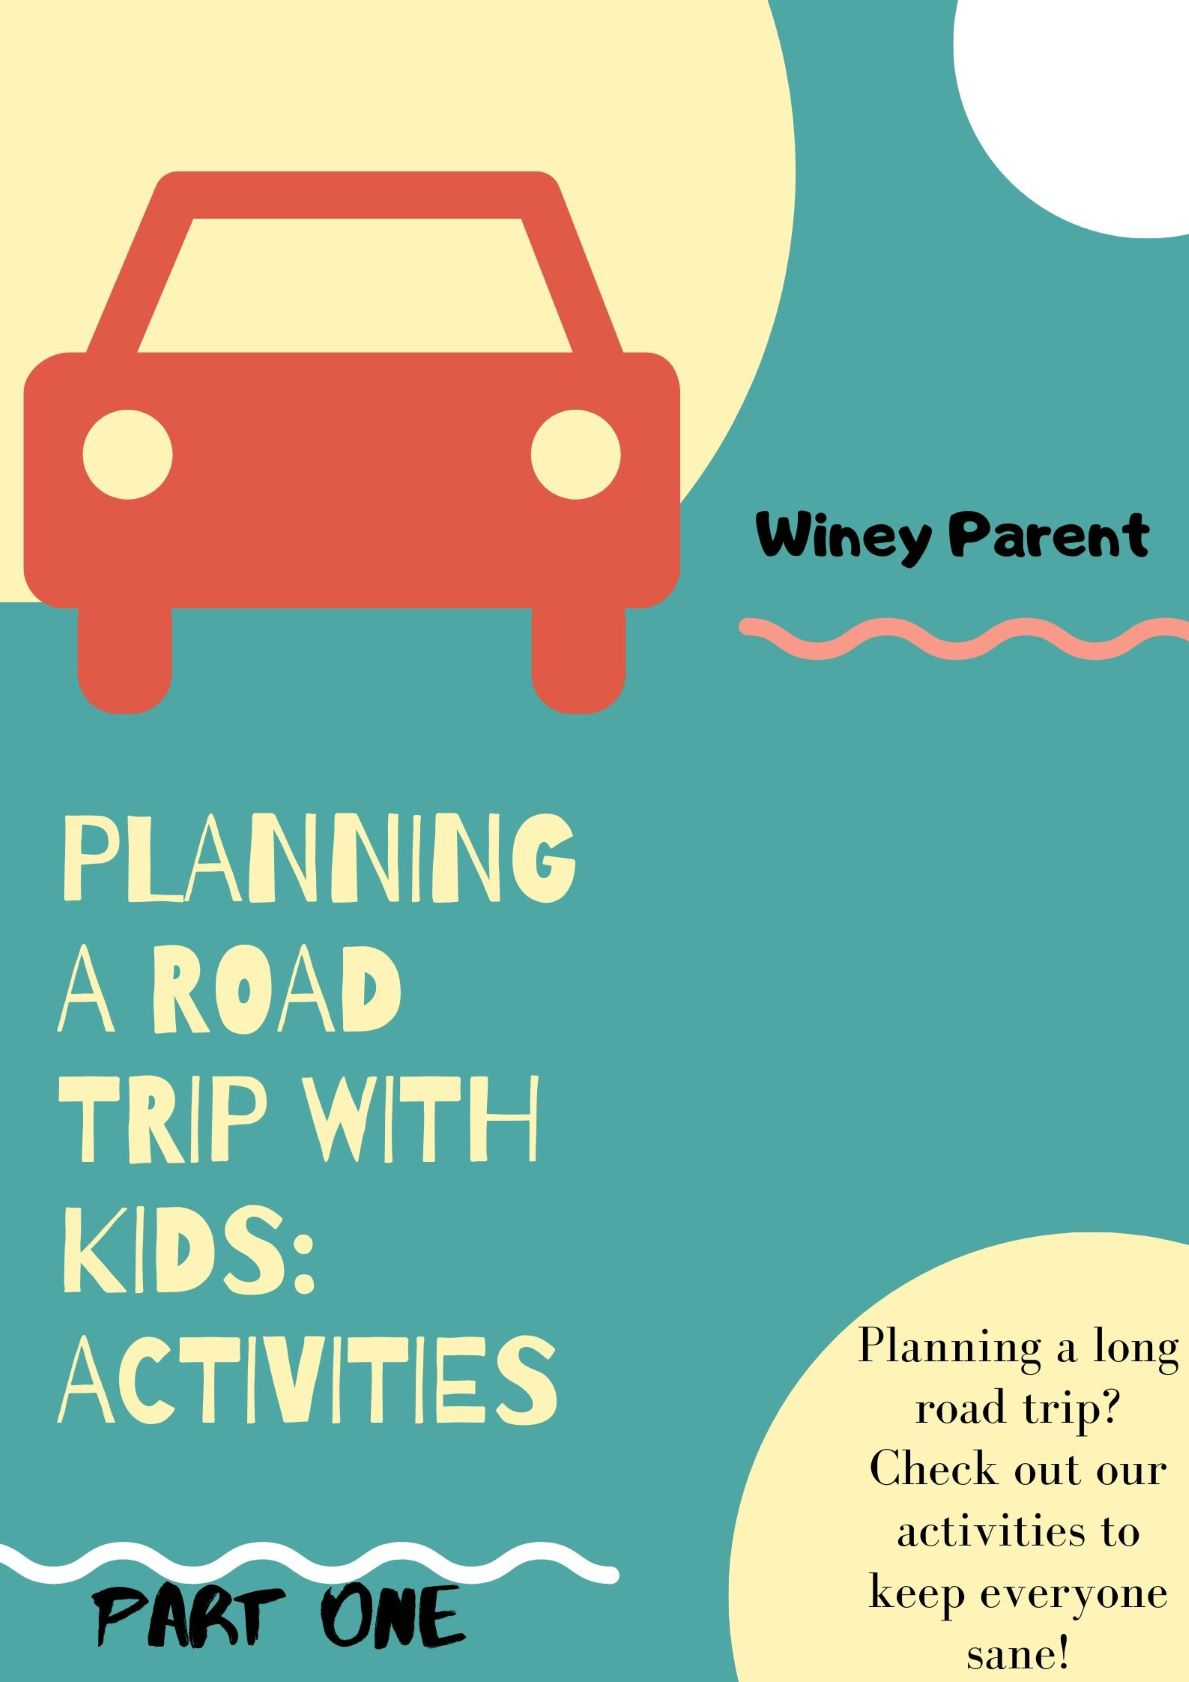 Planning a Road Trip with Kids: Part One